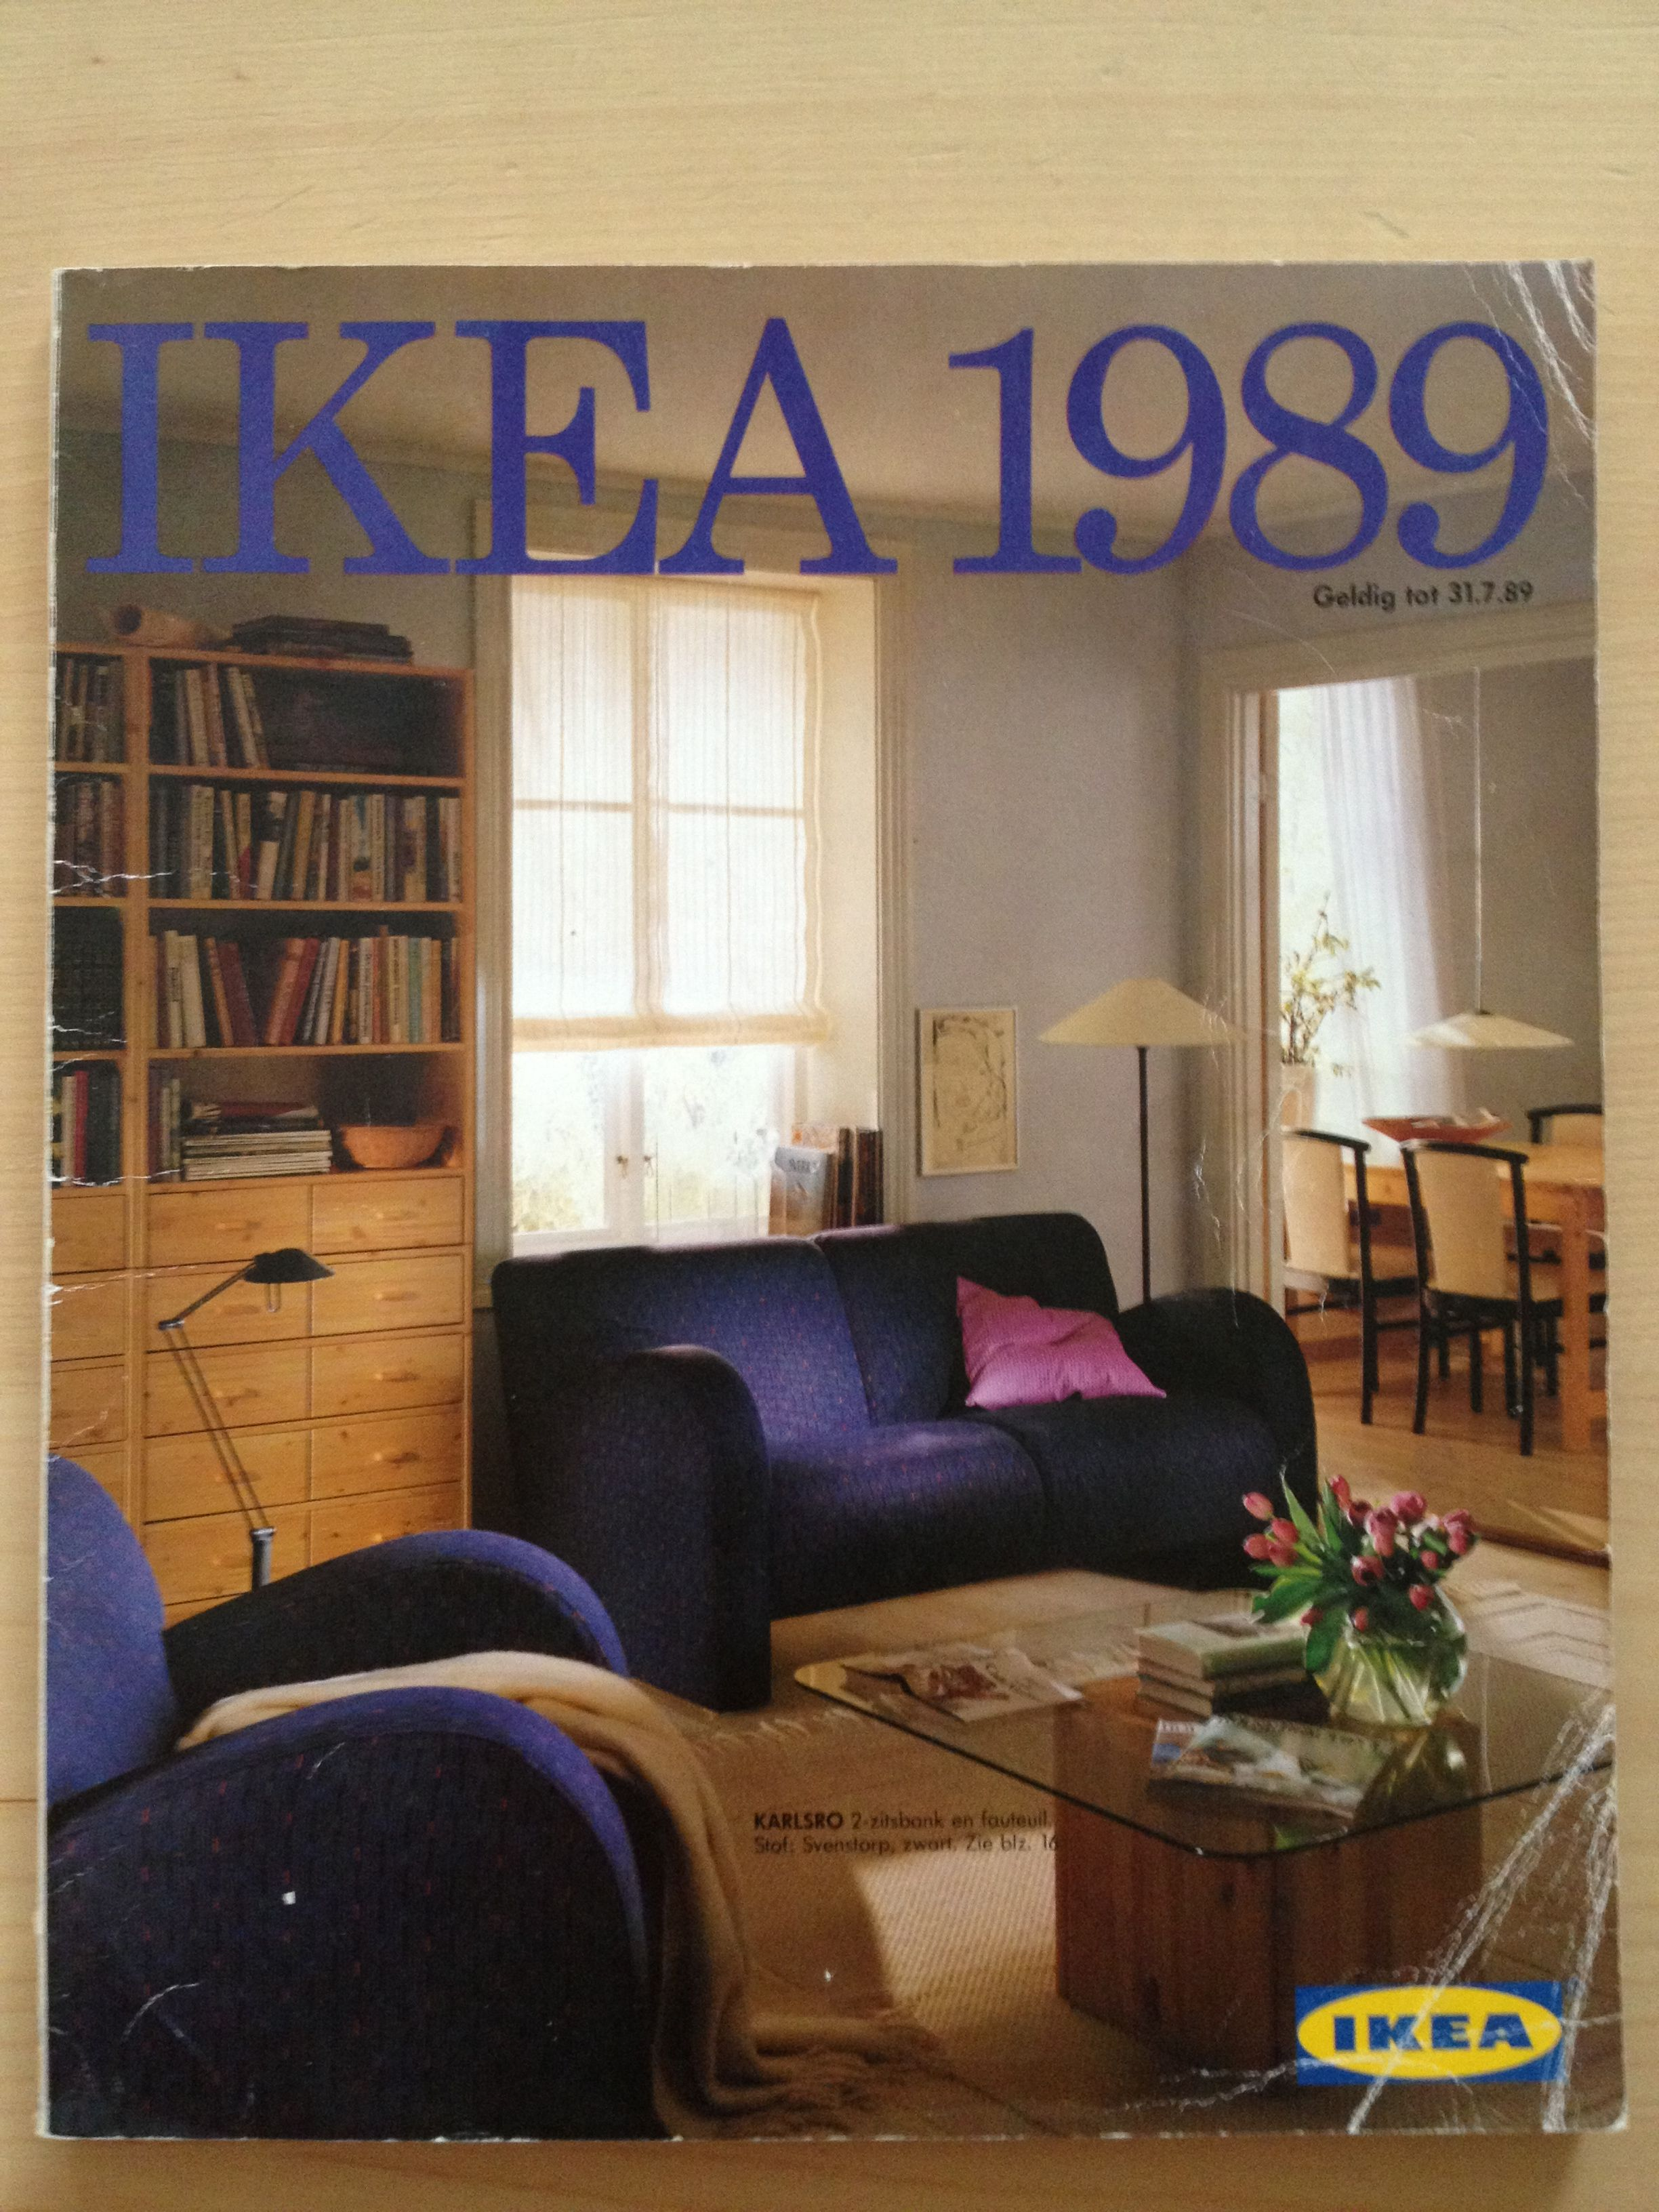 Pin By Mariamni Heracleous On Design For Everyone Ikea Interior Design Books Vintage Interior Design